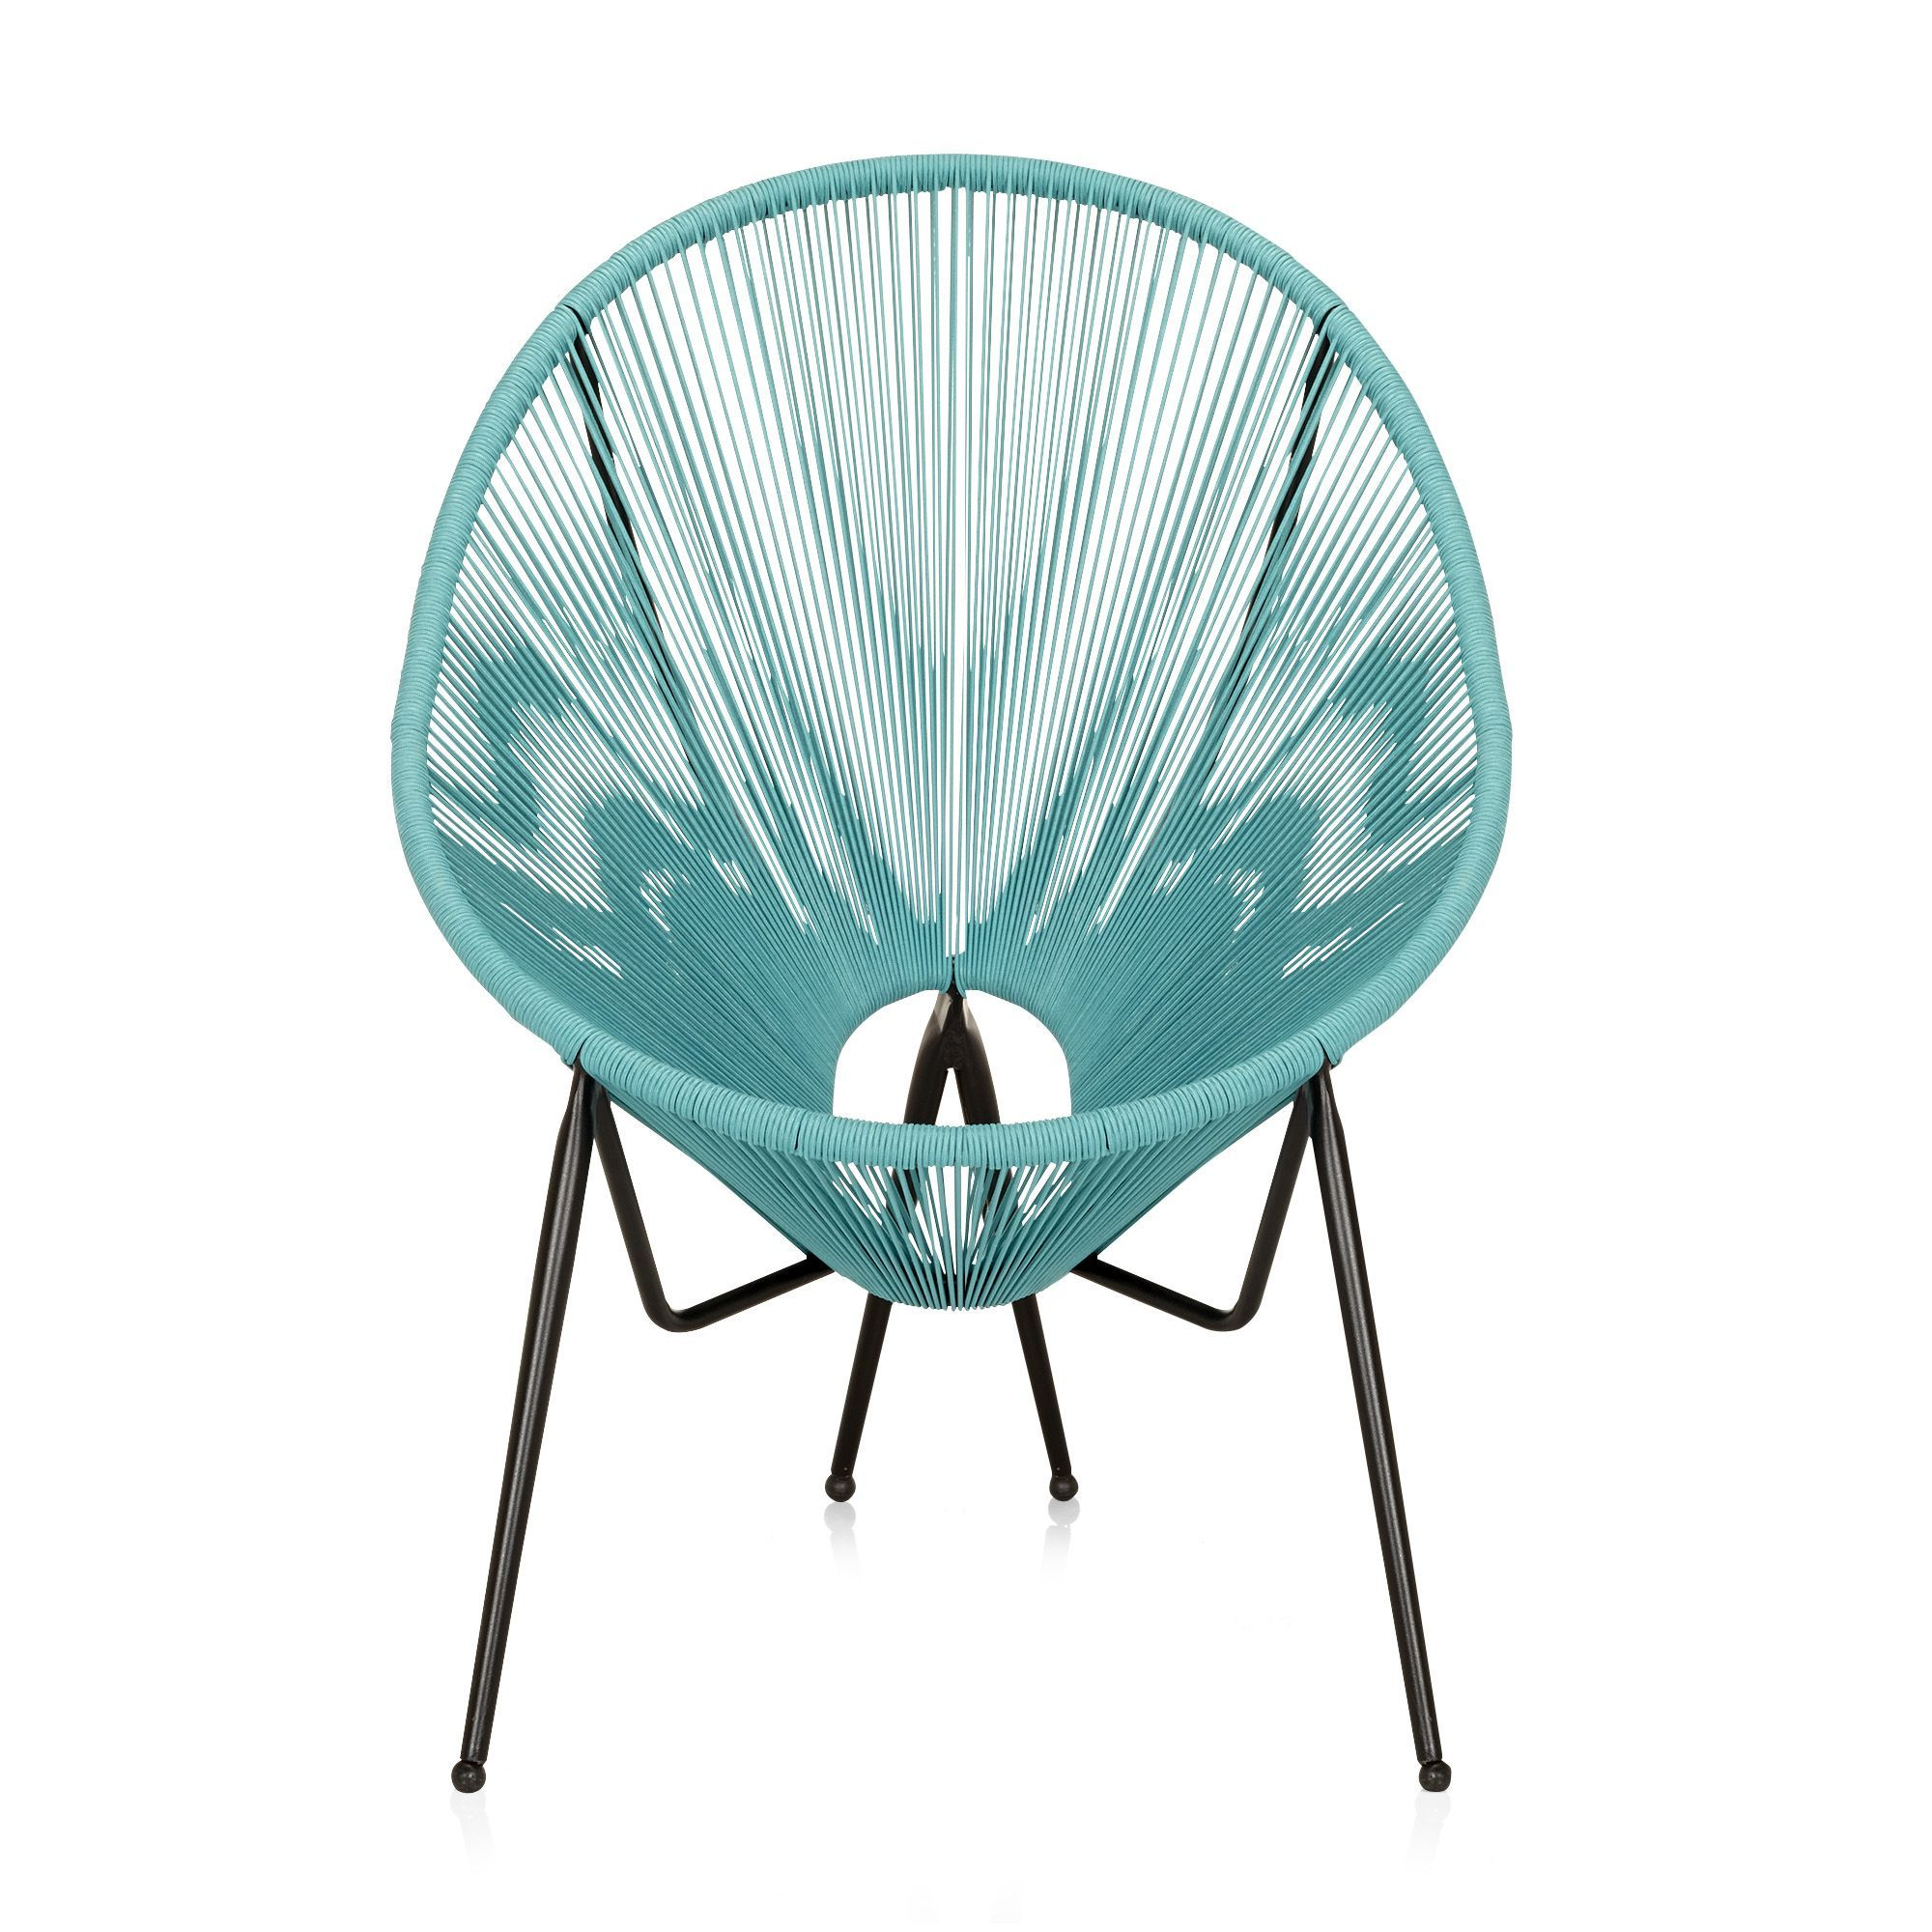 fauteuil de jardin fil scoubidou bleu turquoise kadom les fauteuils de jardin les tables. Black Bedroom Furniture Sets. Home Design Ideas